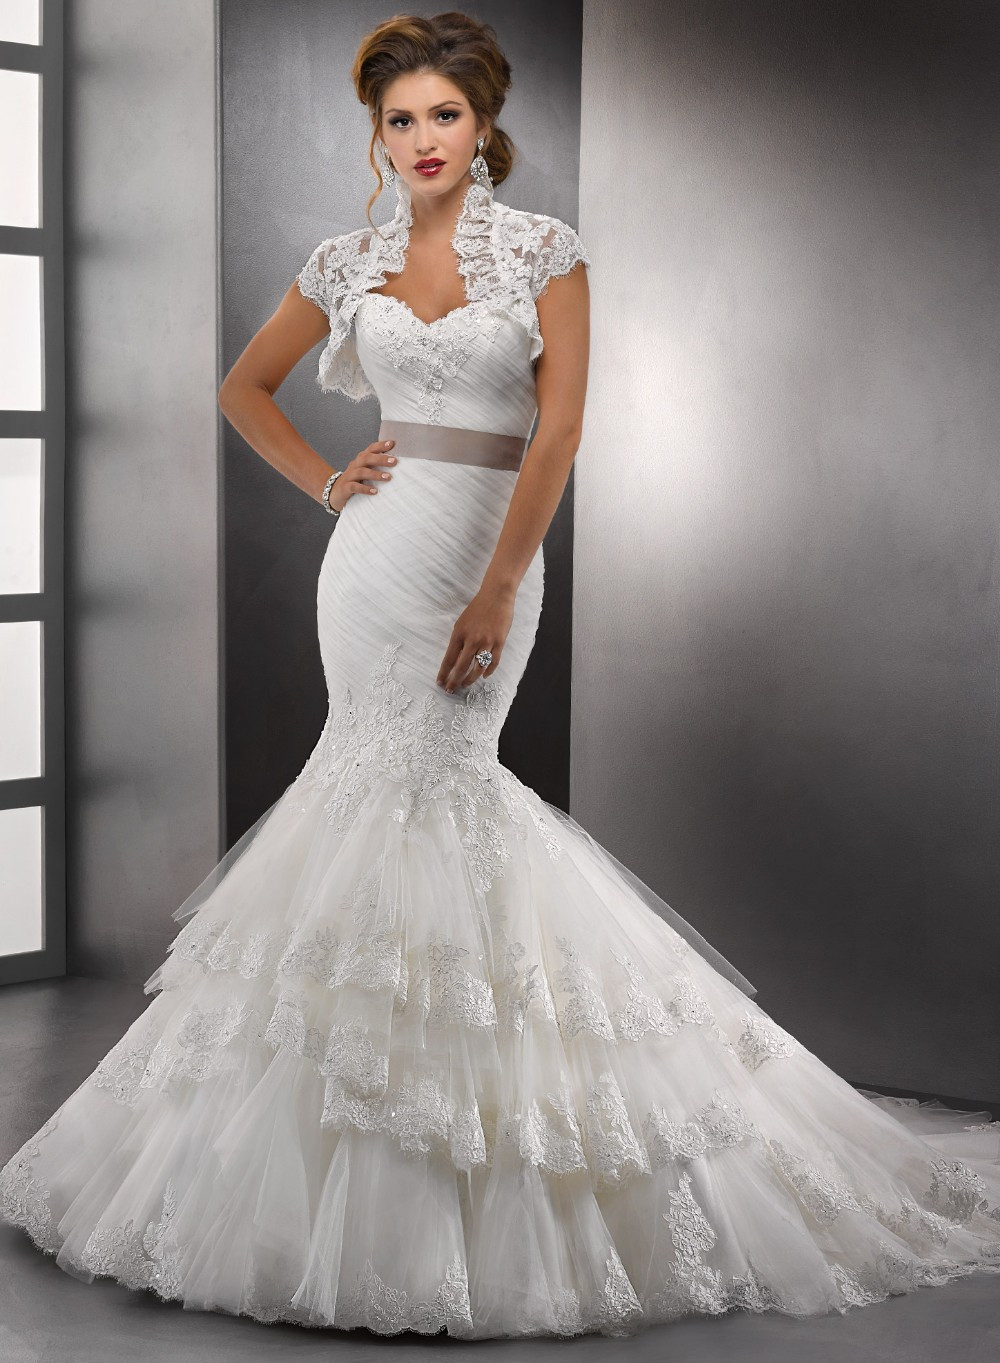 Romantic Ruched Strapless Mermaid Wedding Dress 2015 Lace ...